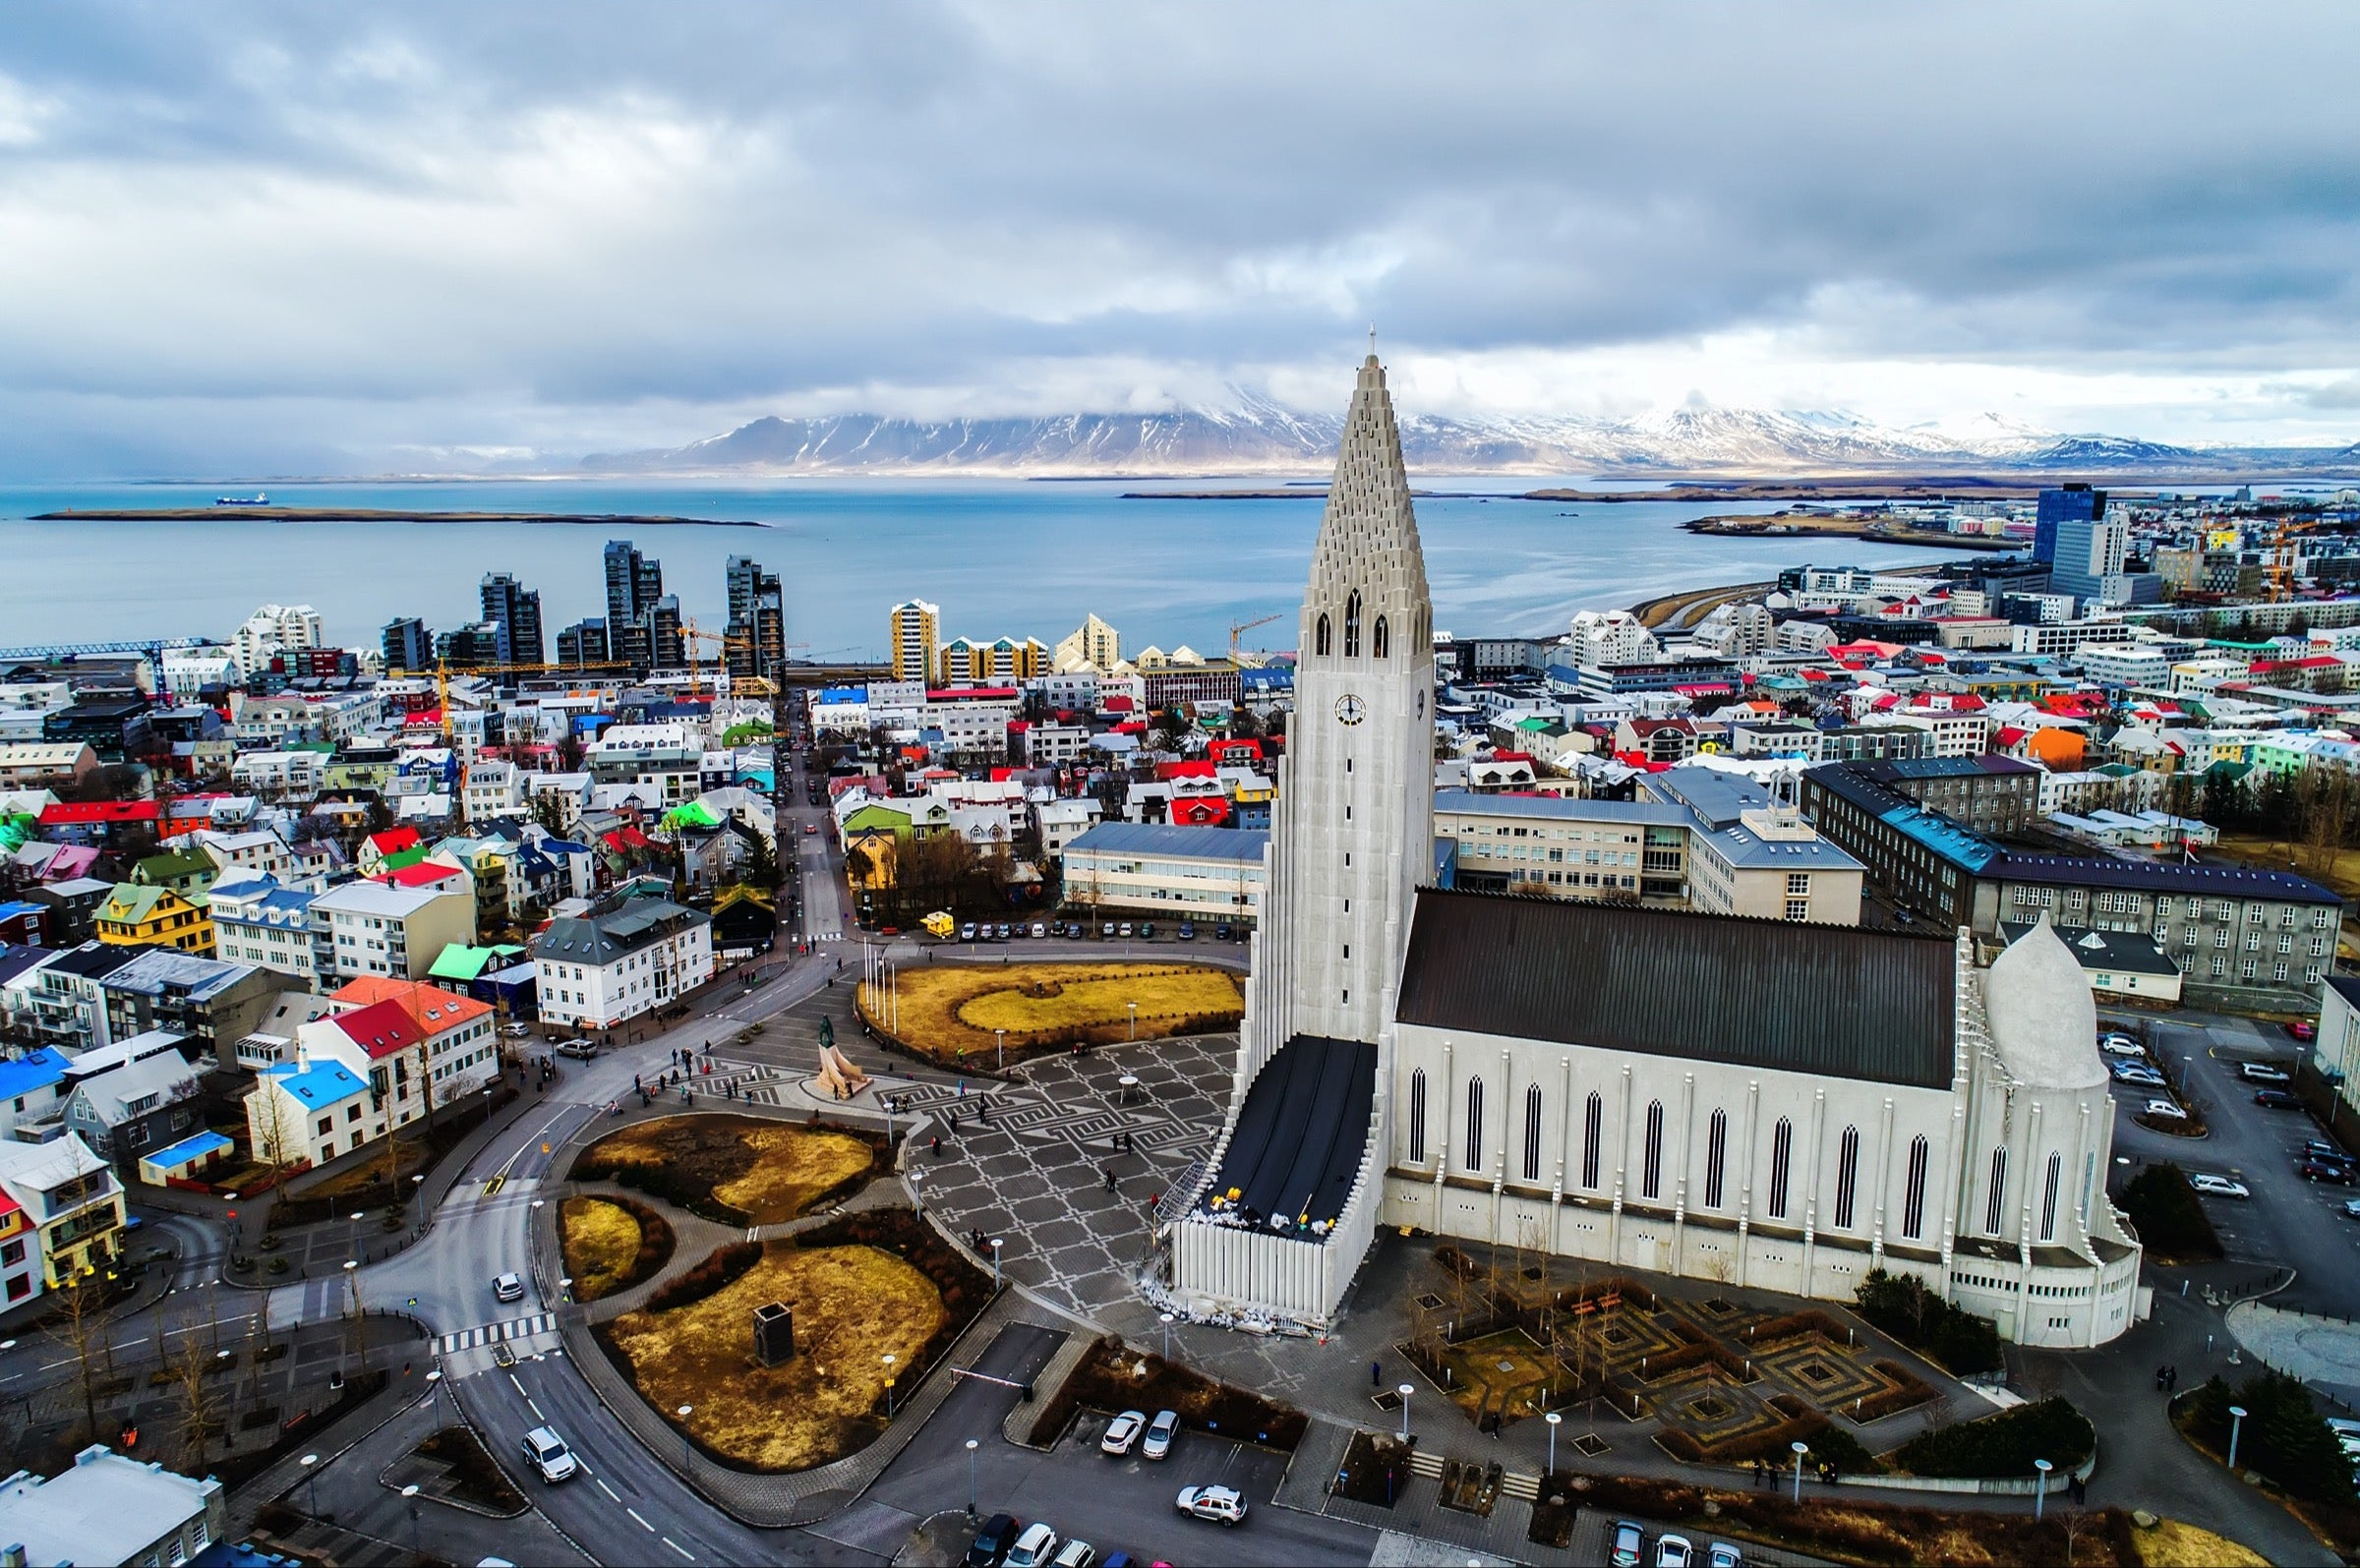 Traveling to Iceland during the coronavirus pandemic — the complete guide - The Points Guy